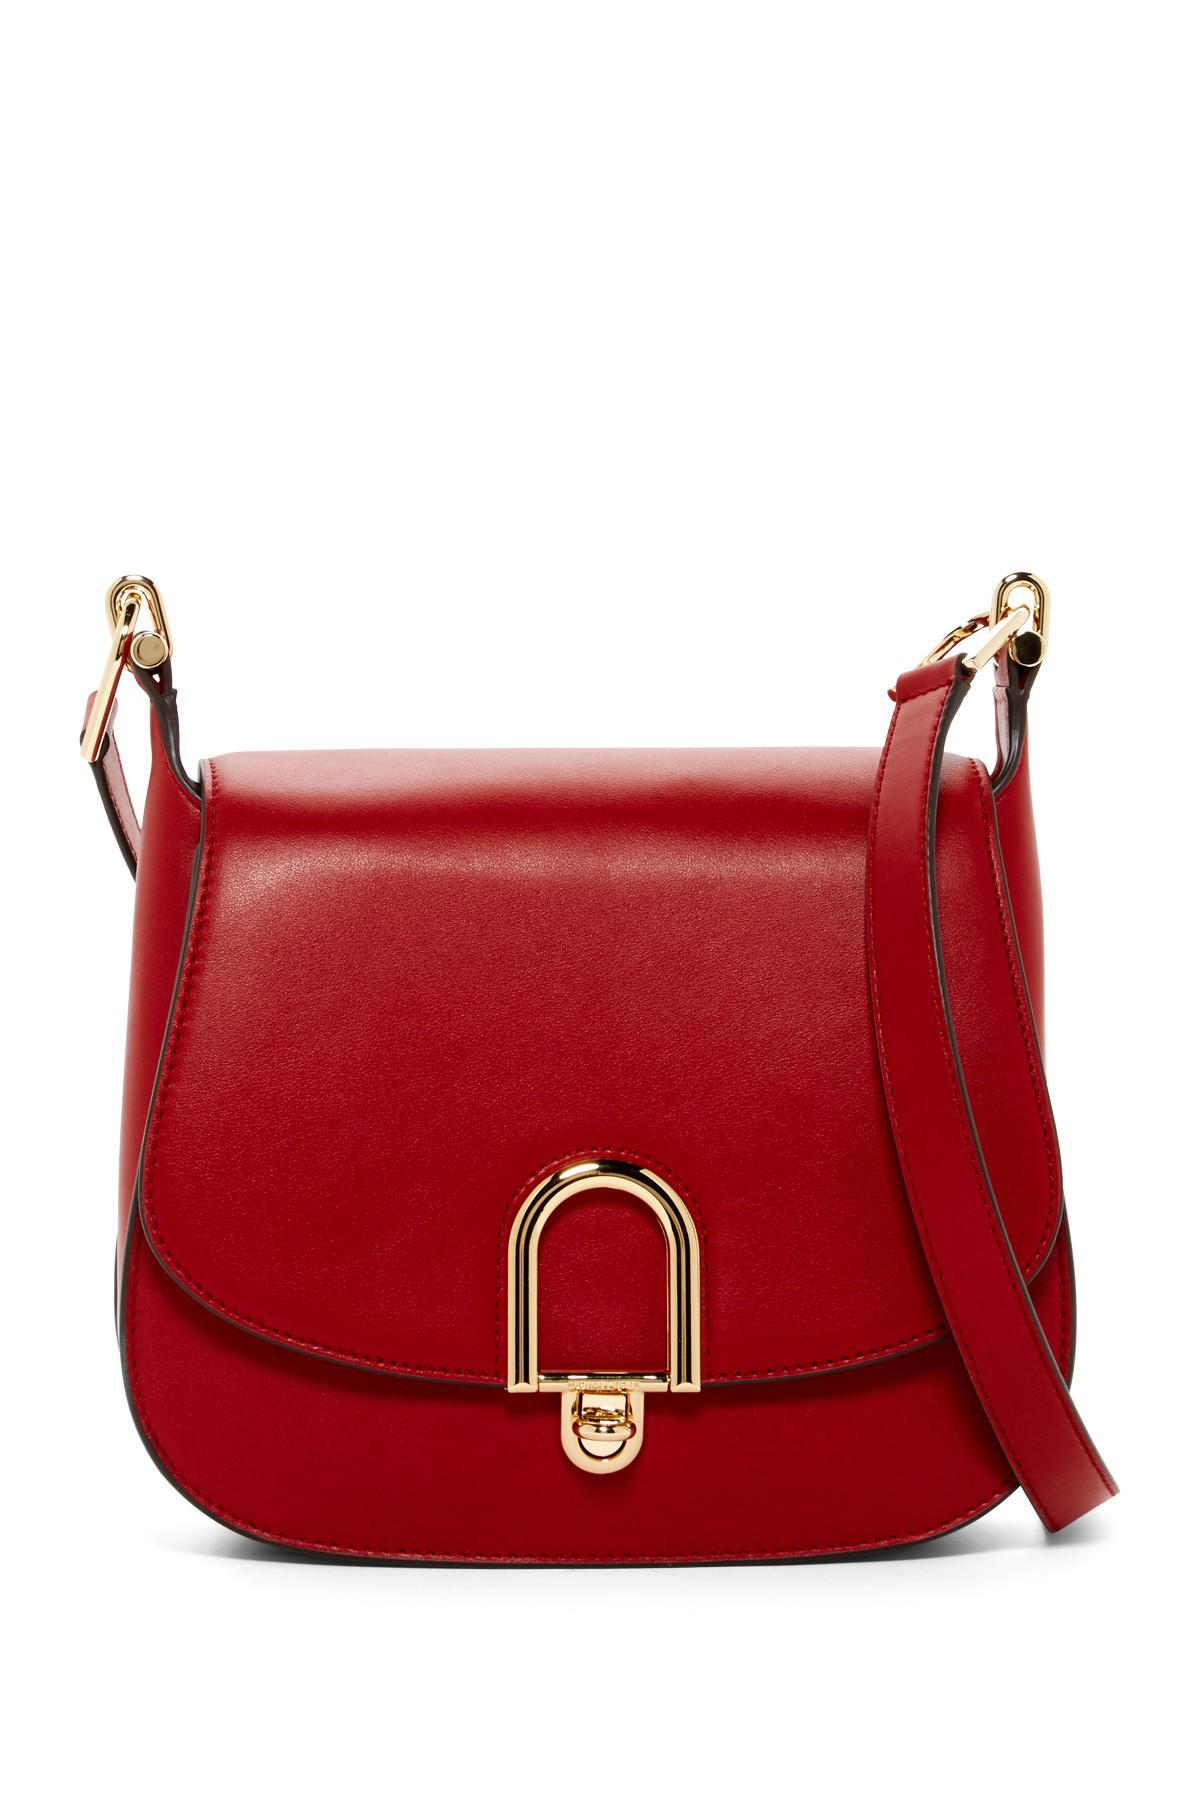 ff7d6f4489a2 Lyst - MICHAEL Michael Kors Delfina Large Leather Saddle Bag in Red